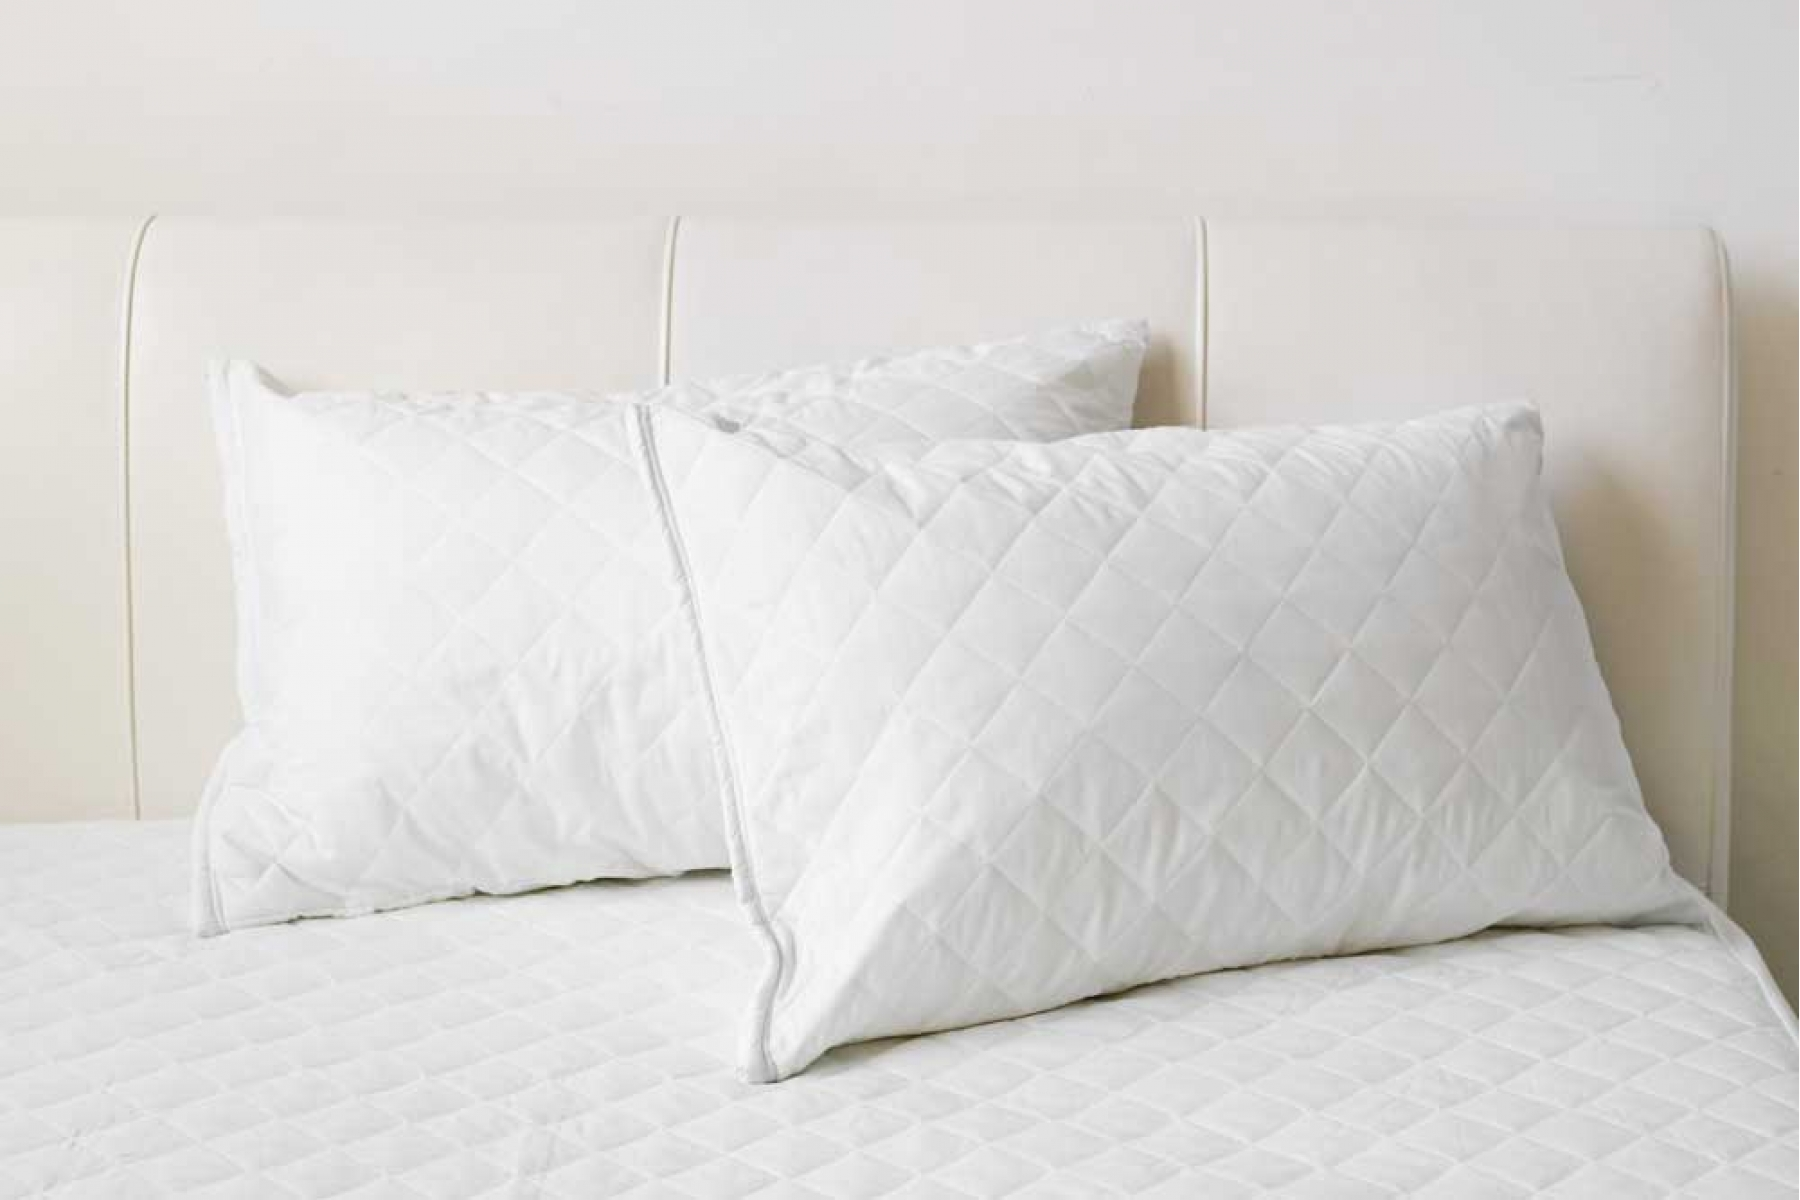 Organic Cotton Mattress Pad Queen Pillow Protectors Related Keywords & Suggestions - Pillow Protectors ...